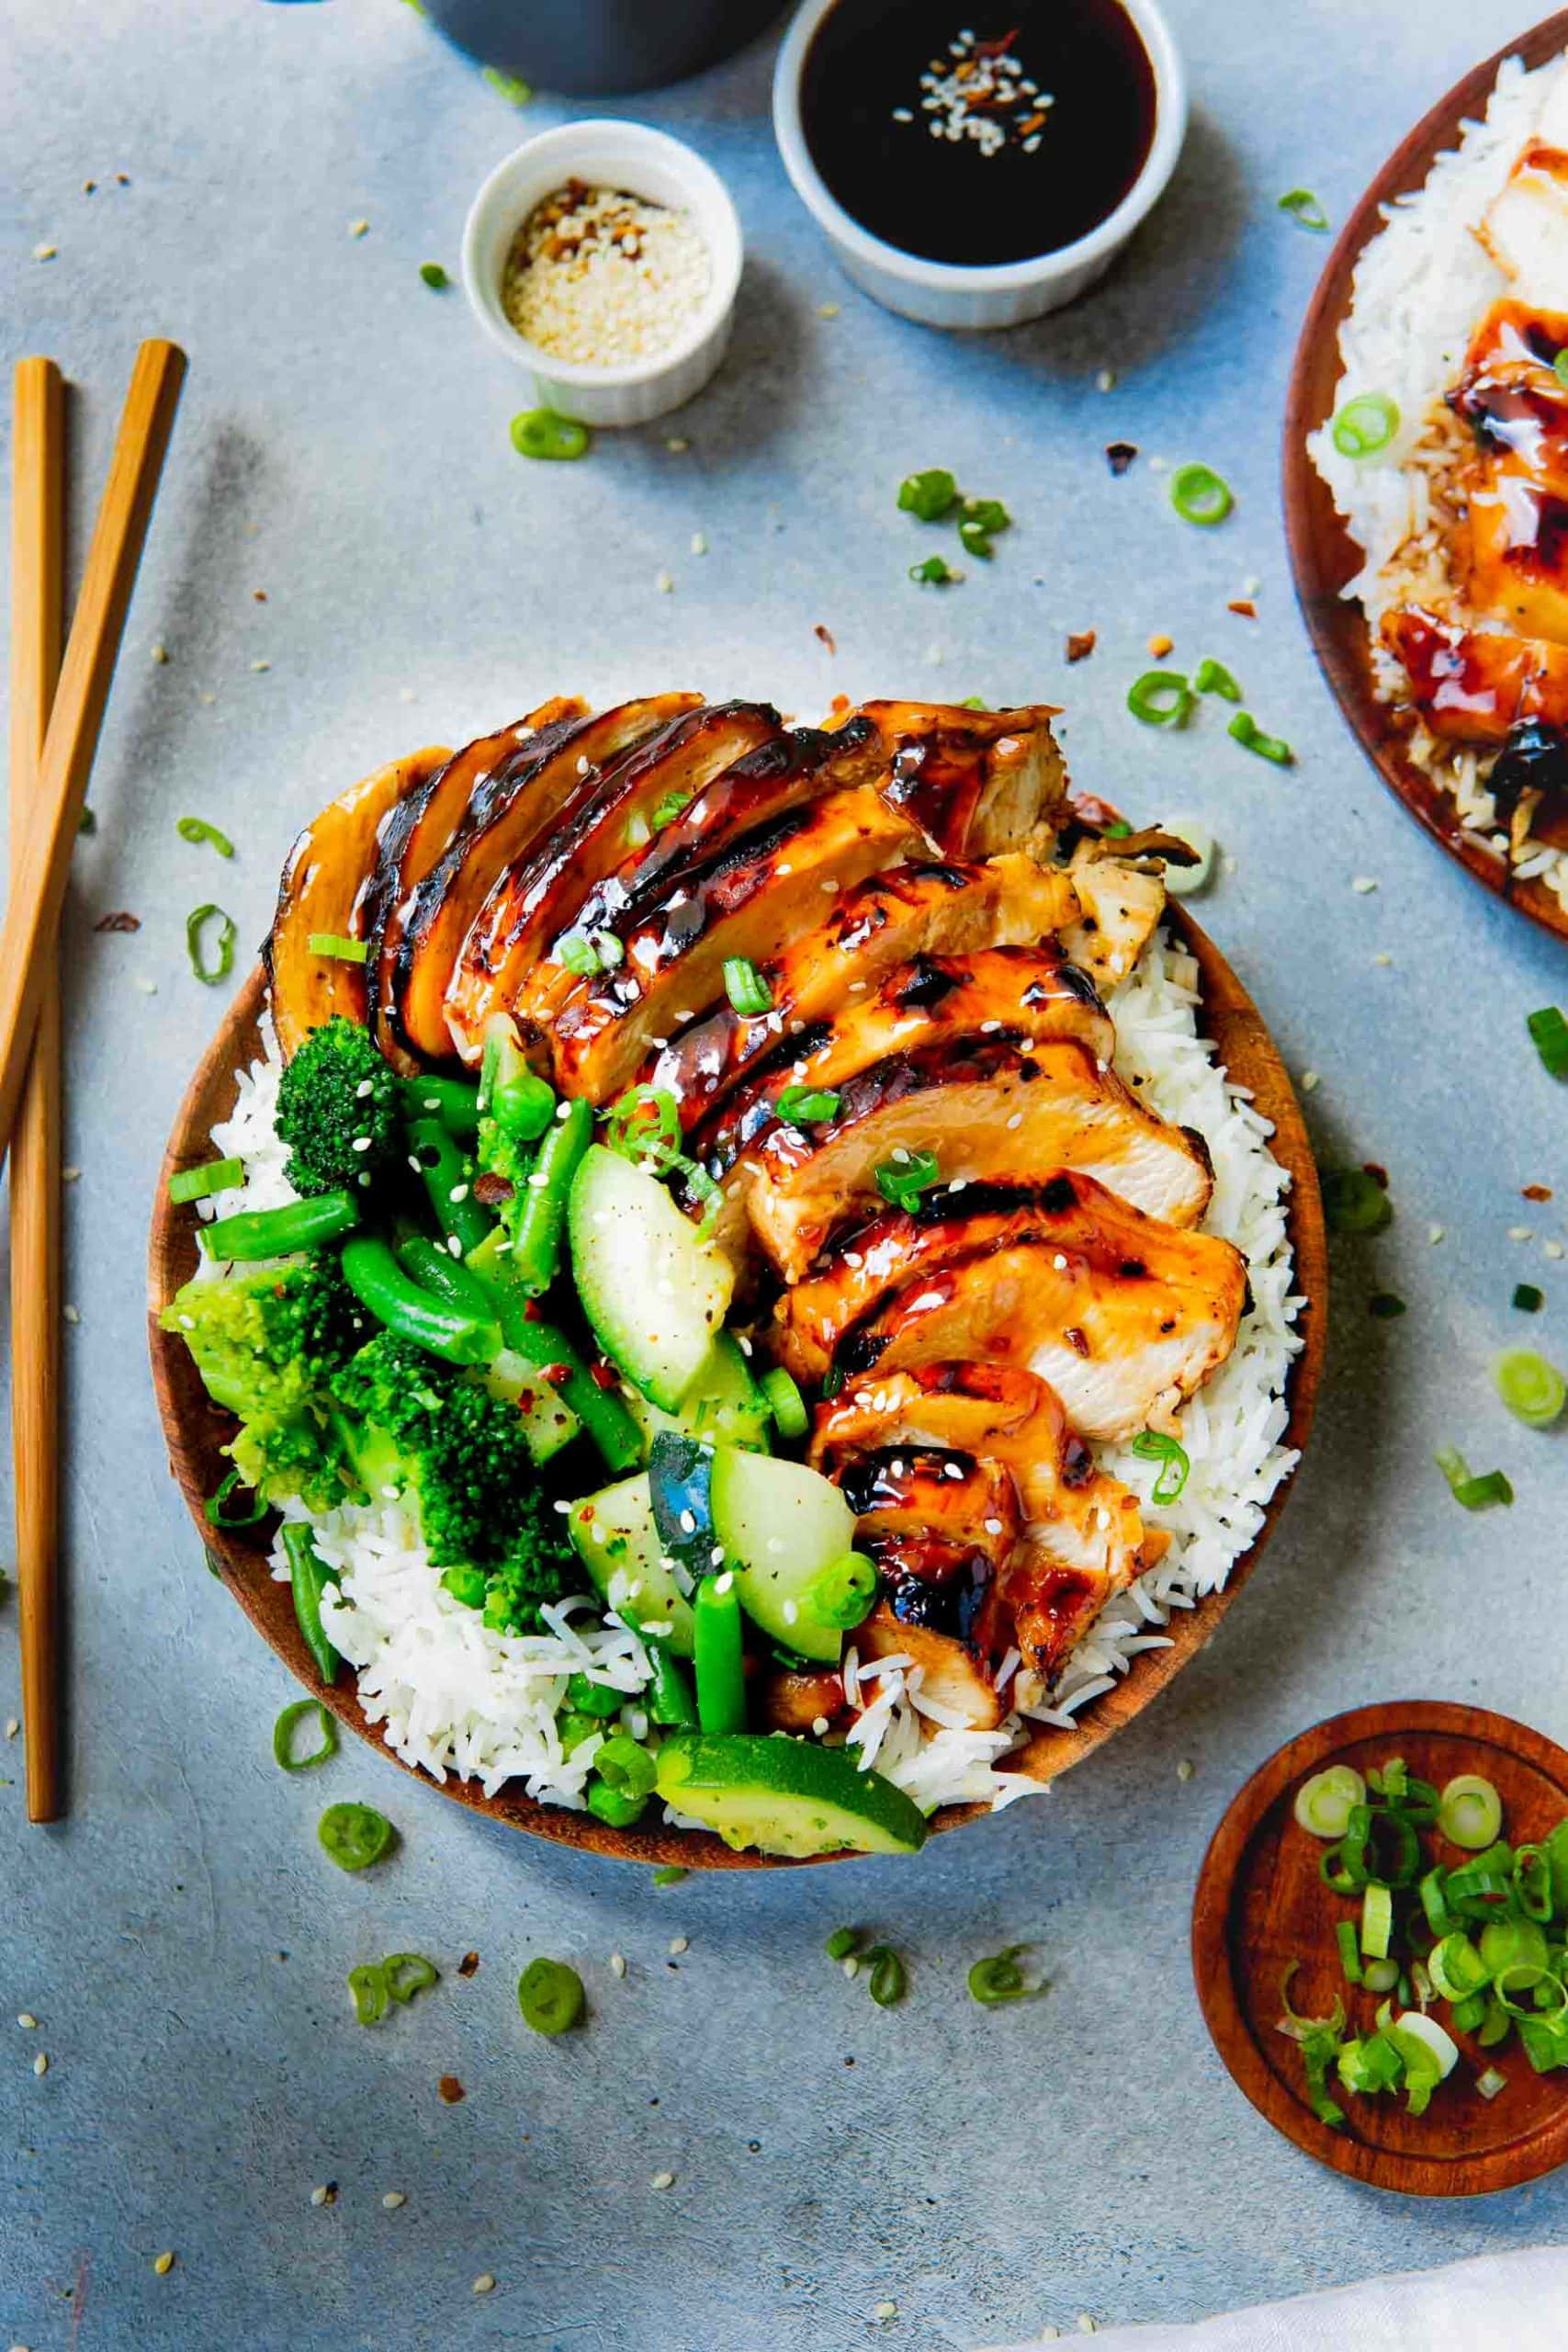 Picture of a rice dish topped with teriyaki chicken with steamed broccoli, zucchini and green beans.